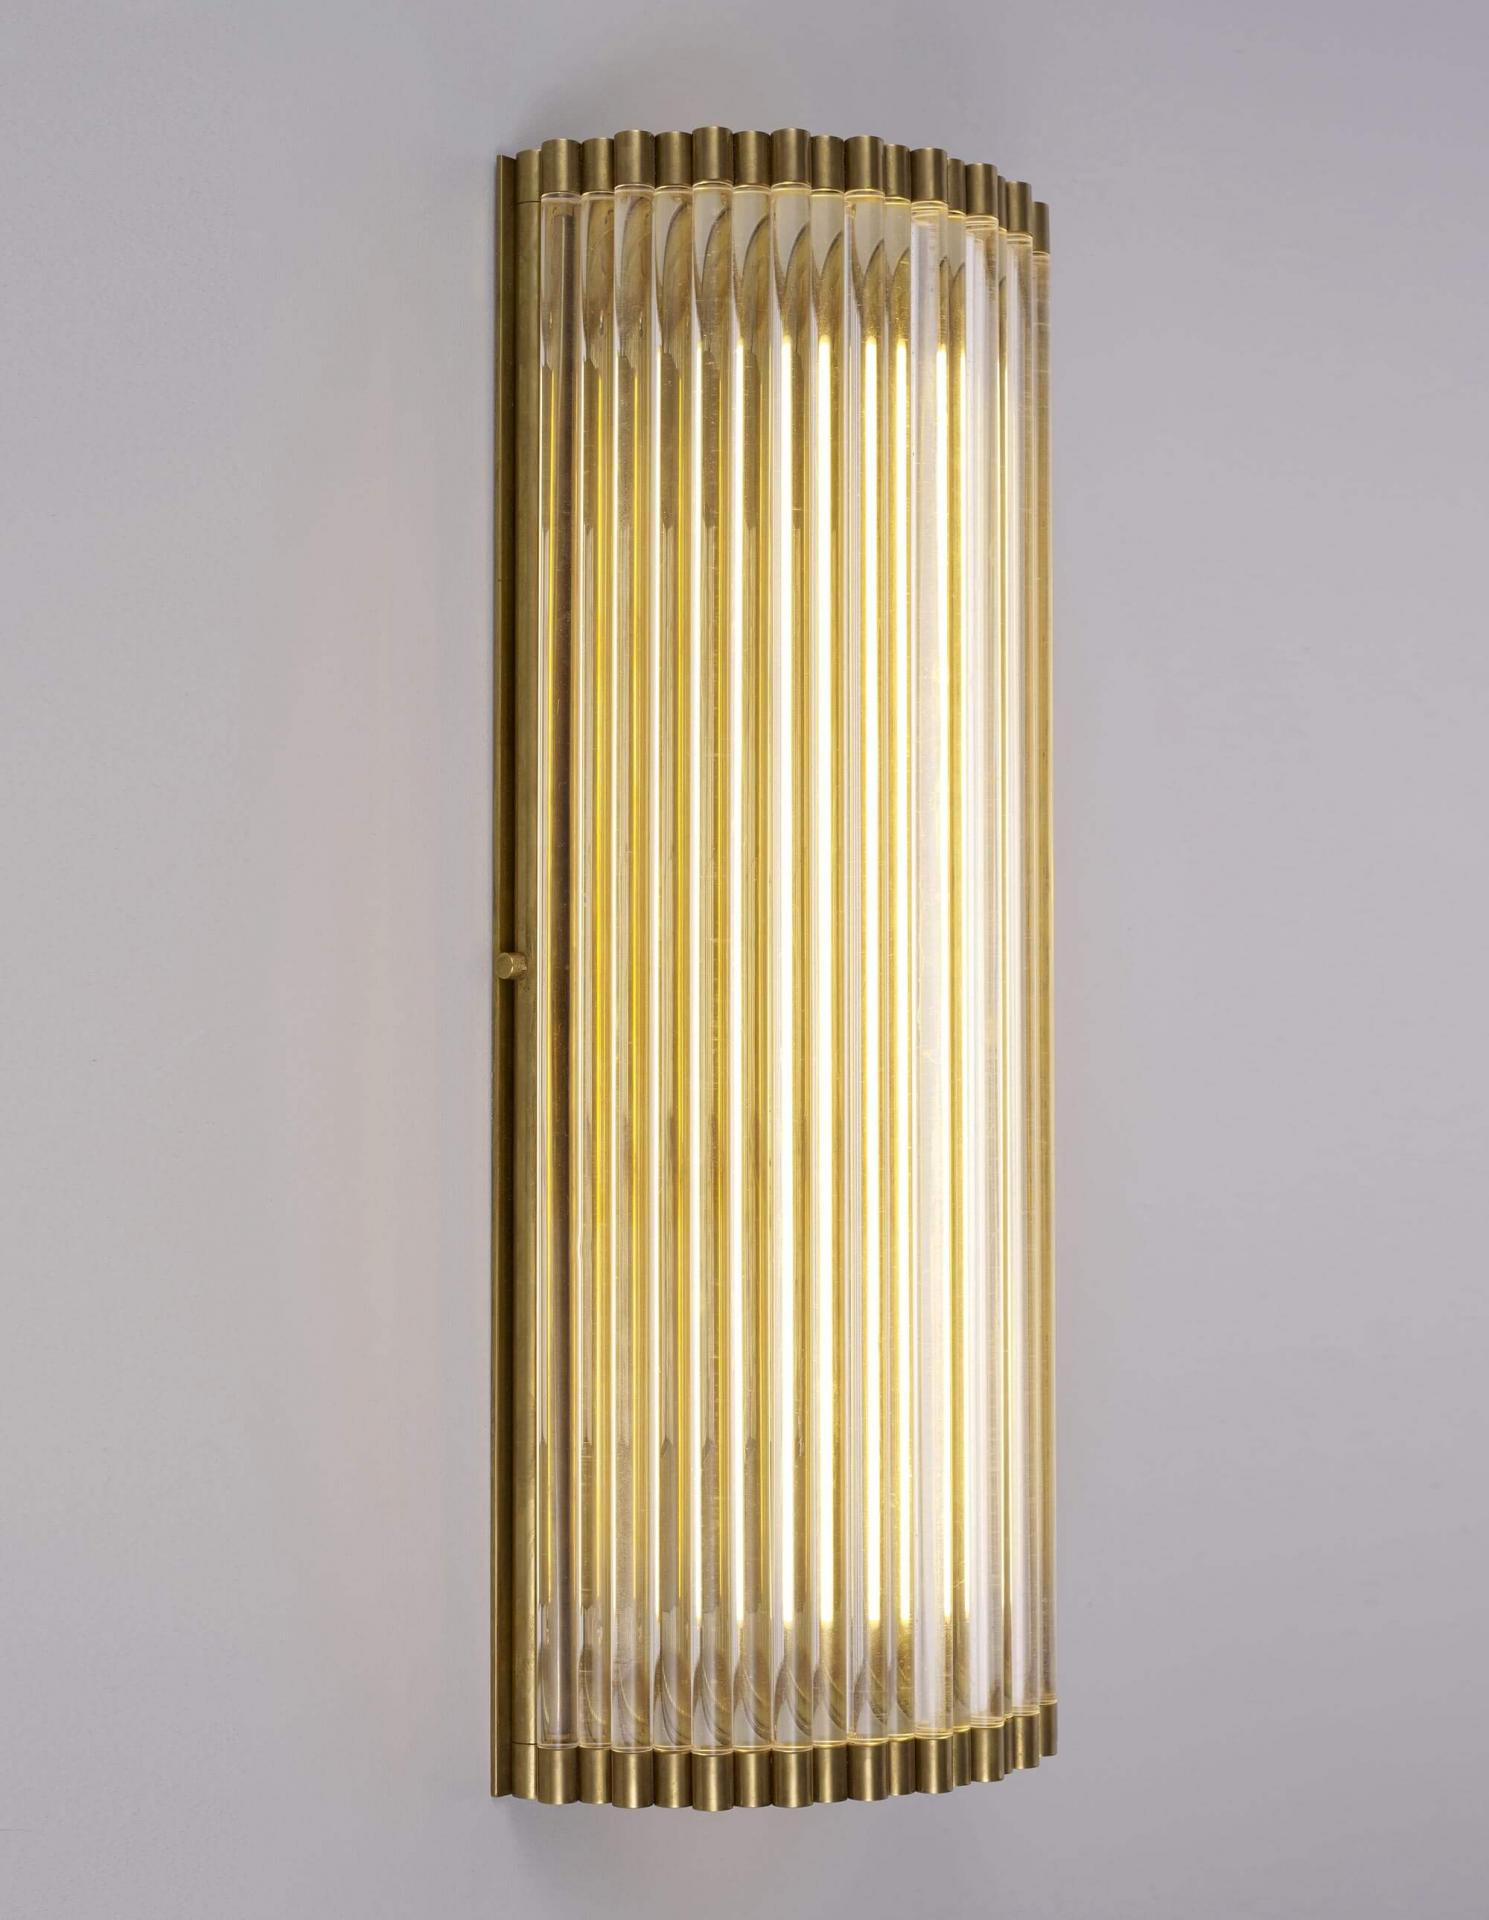 wall light with glass rods